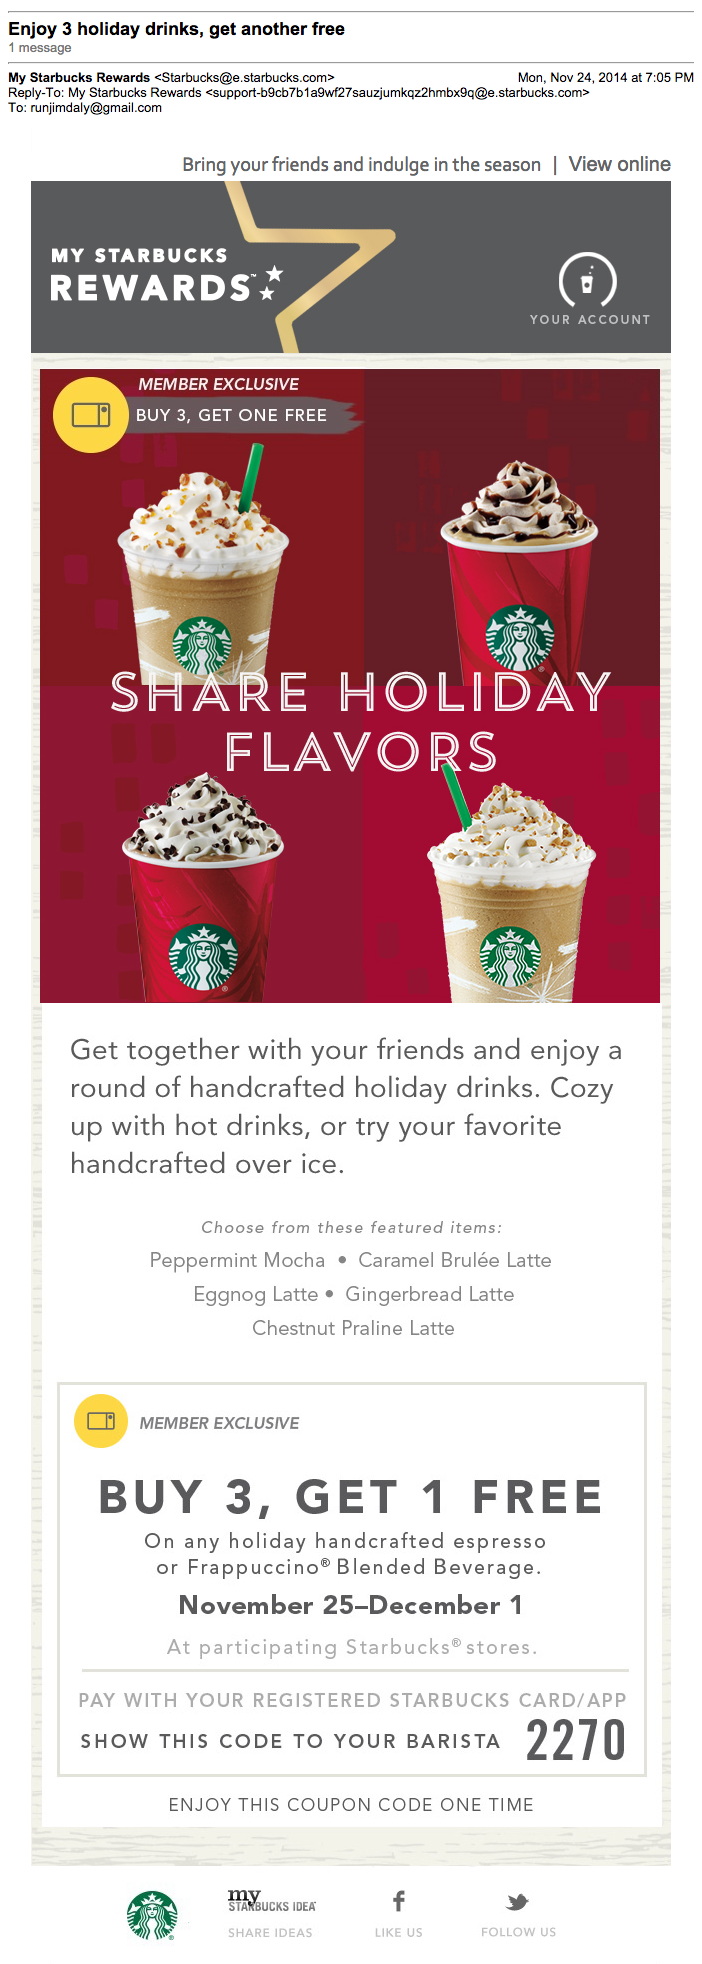 Starbucks_Special_Offer_Email